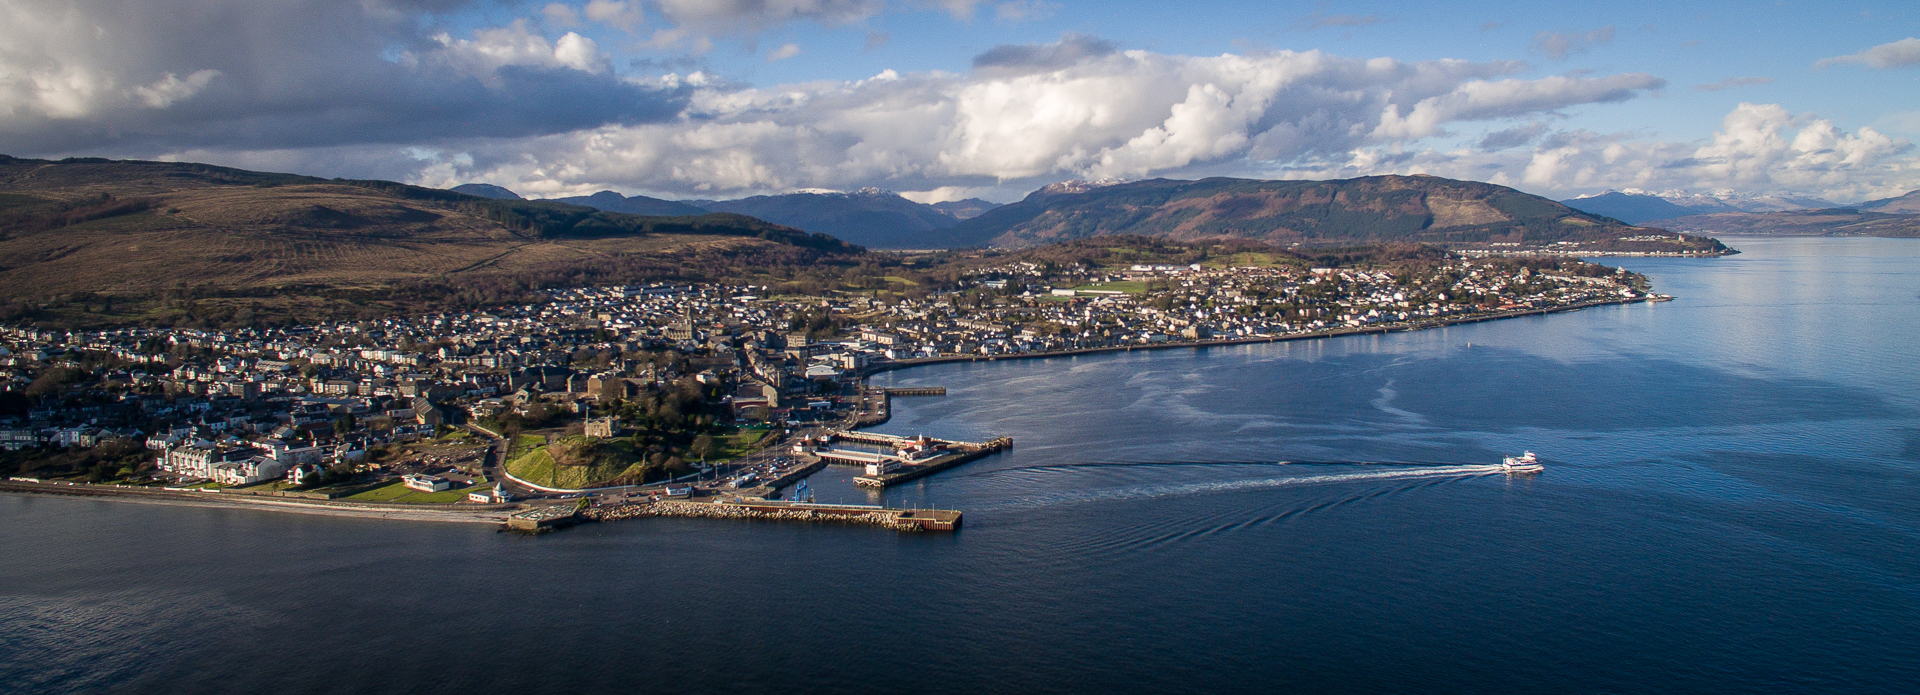 Dunoon From The Air